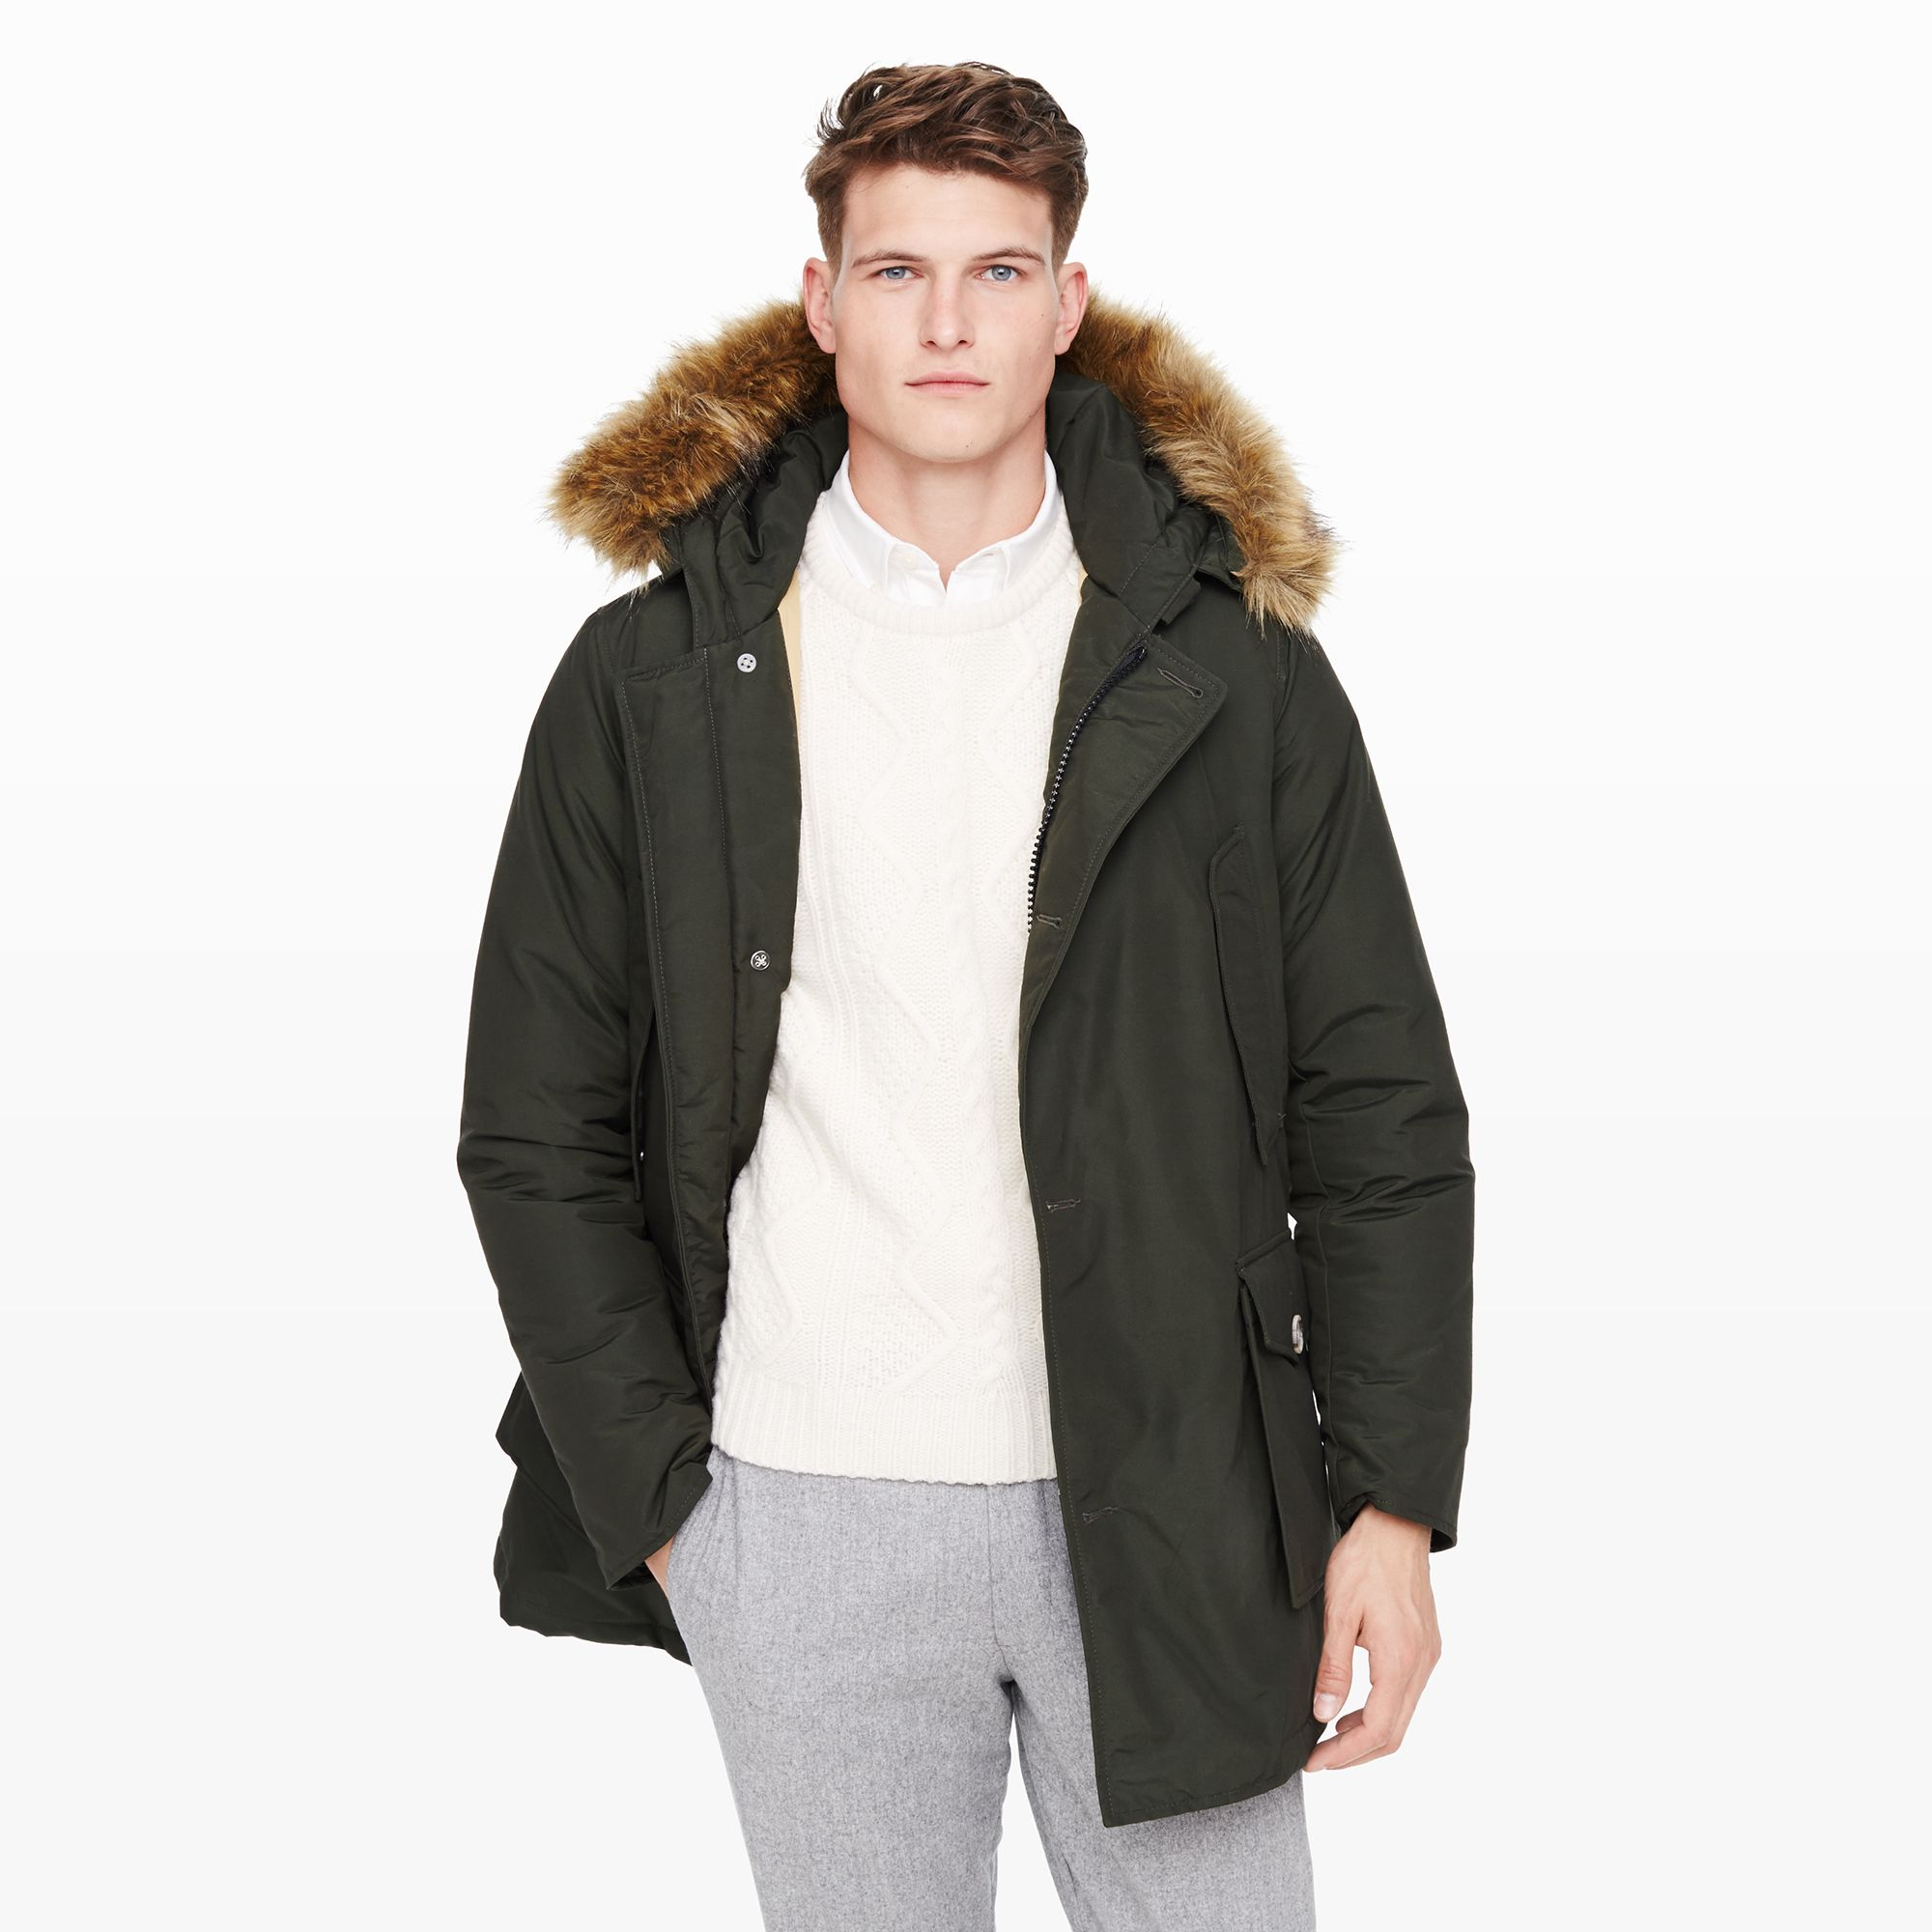 Lyst - Club Monaco Woolrich Arctic Parka in Green for Men f0cda68333